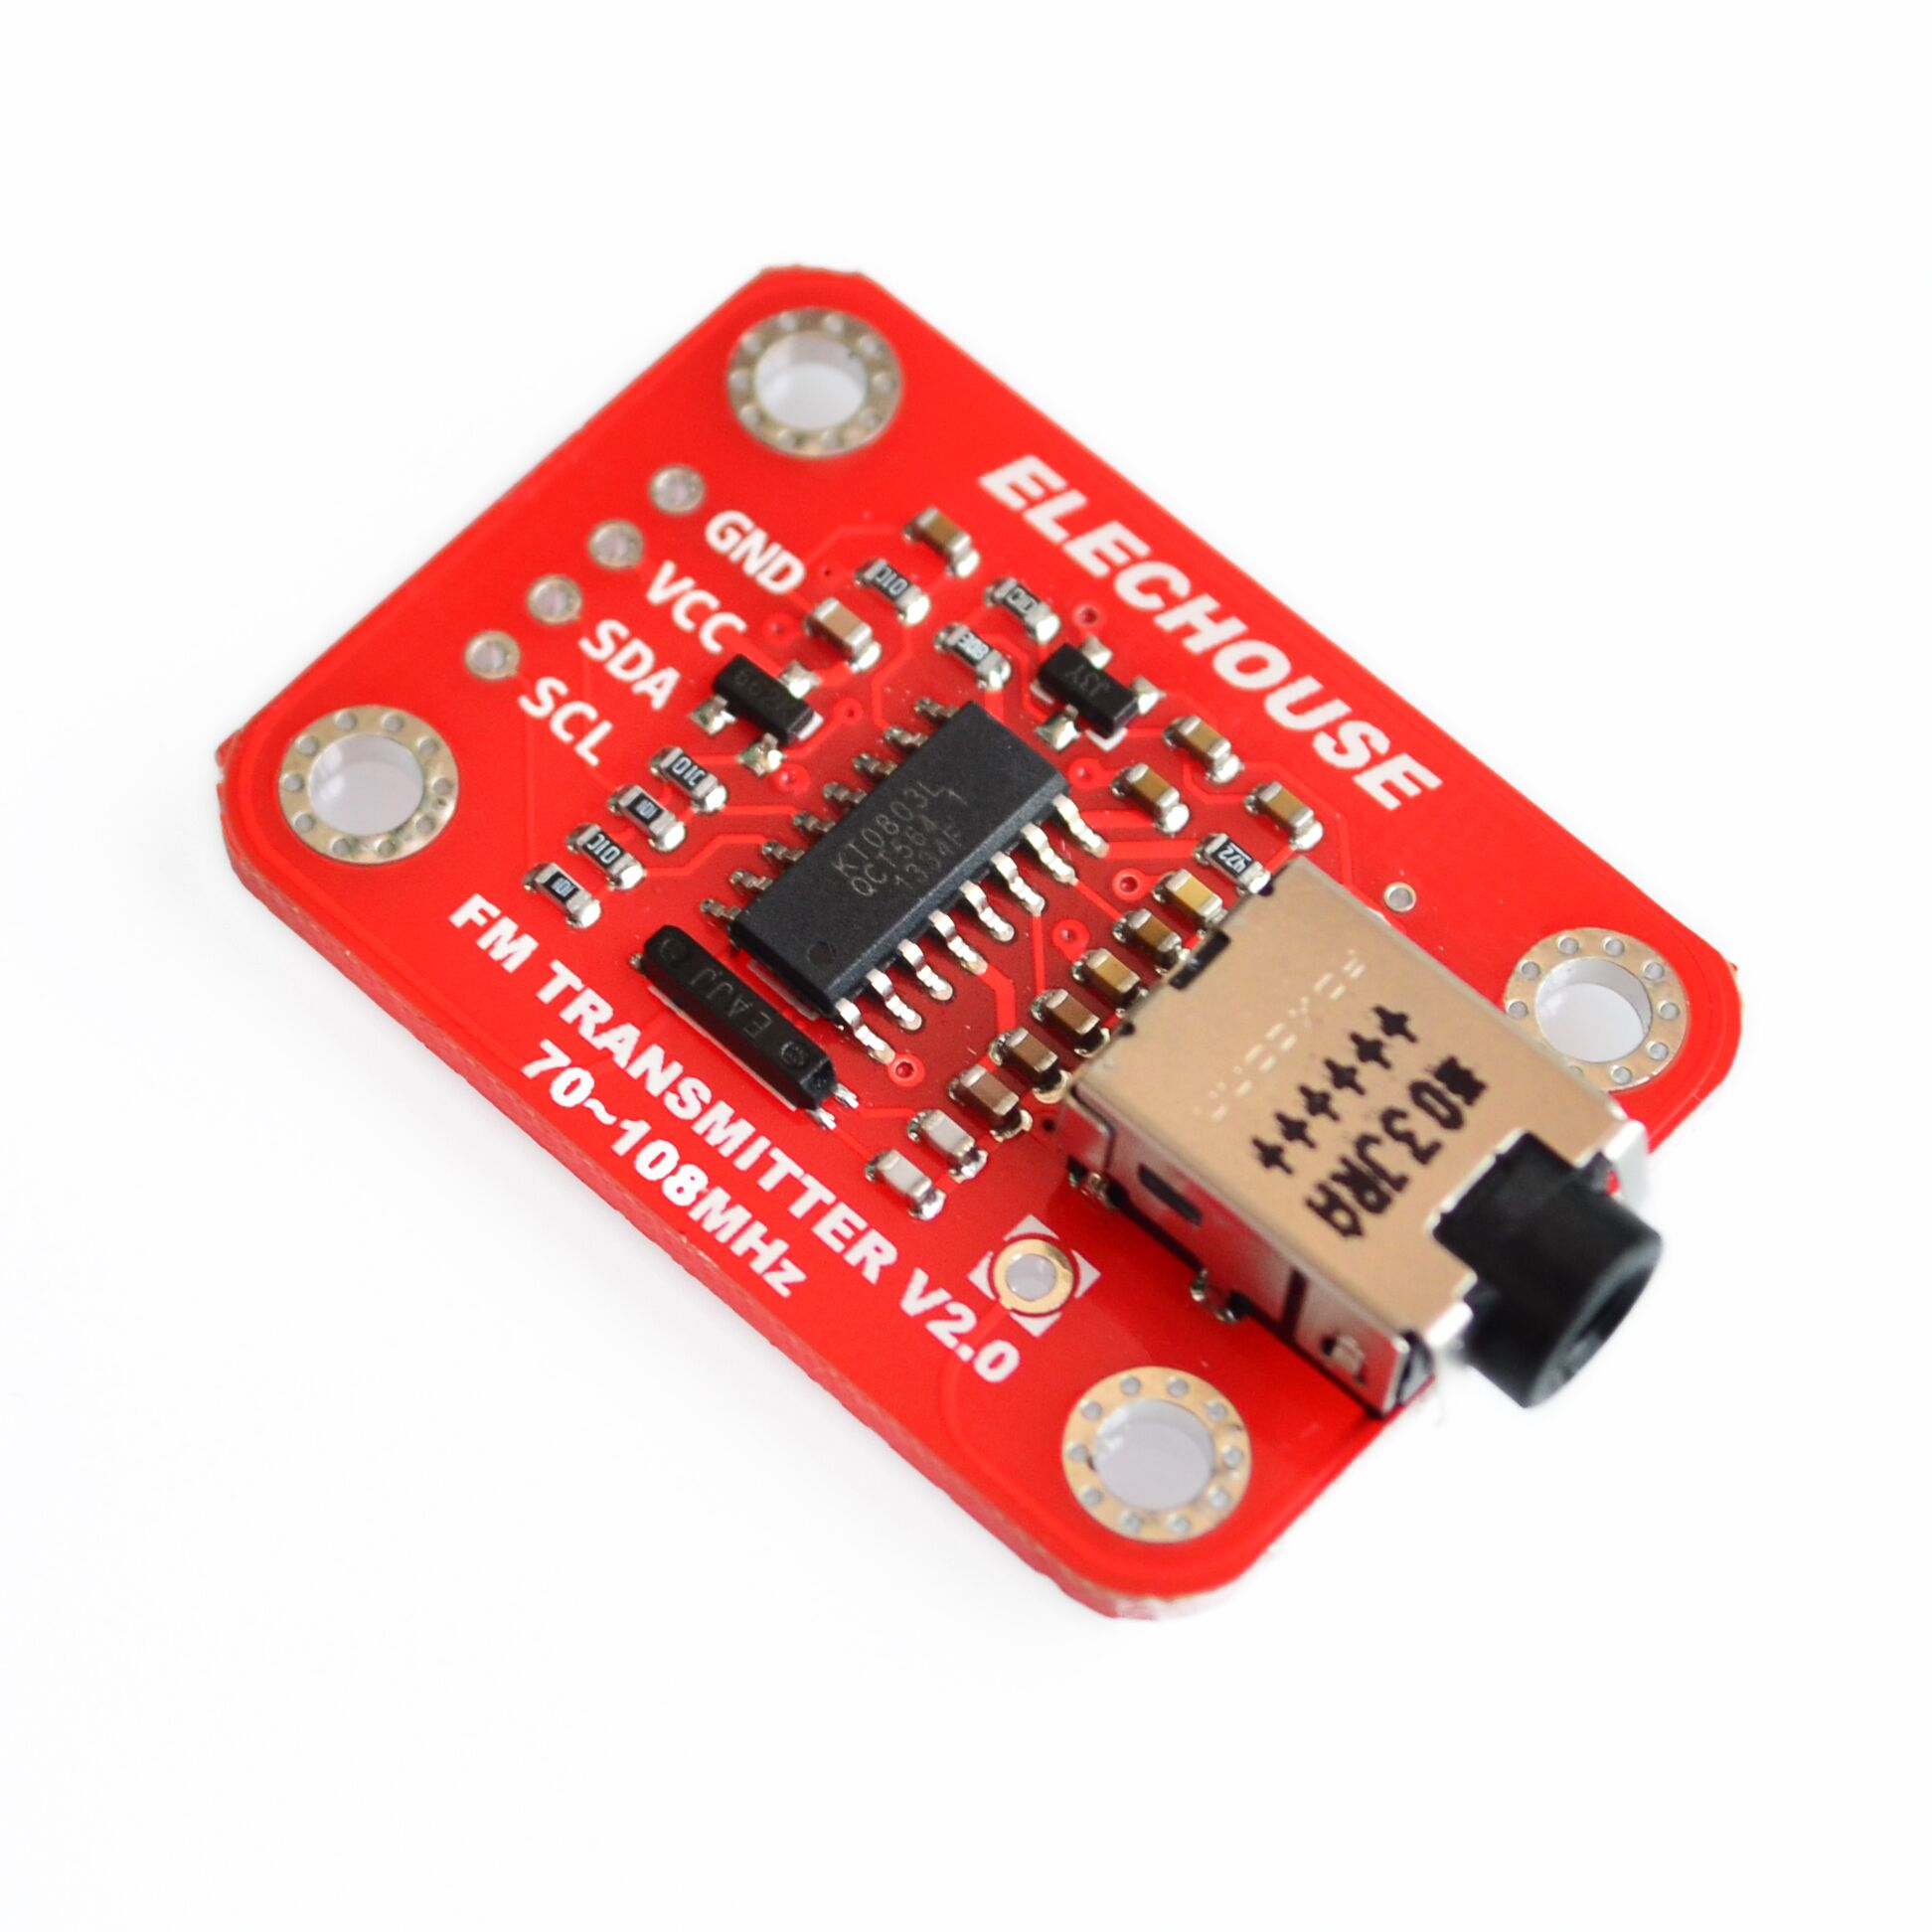 Mcu Digital Frequency Stabilization Stereo Fm Radio Receiver 70 25jc Ic Package Chip Ba1404 Programmable Integrated Circuit Transmitter Module Station